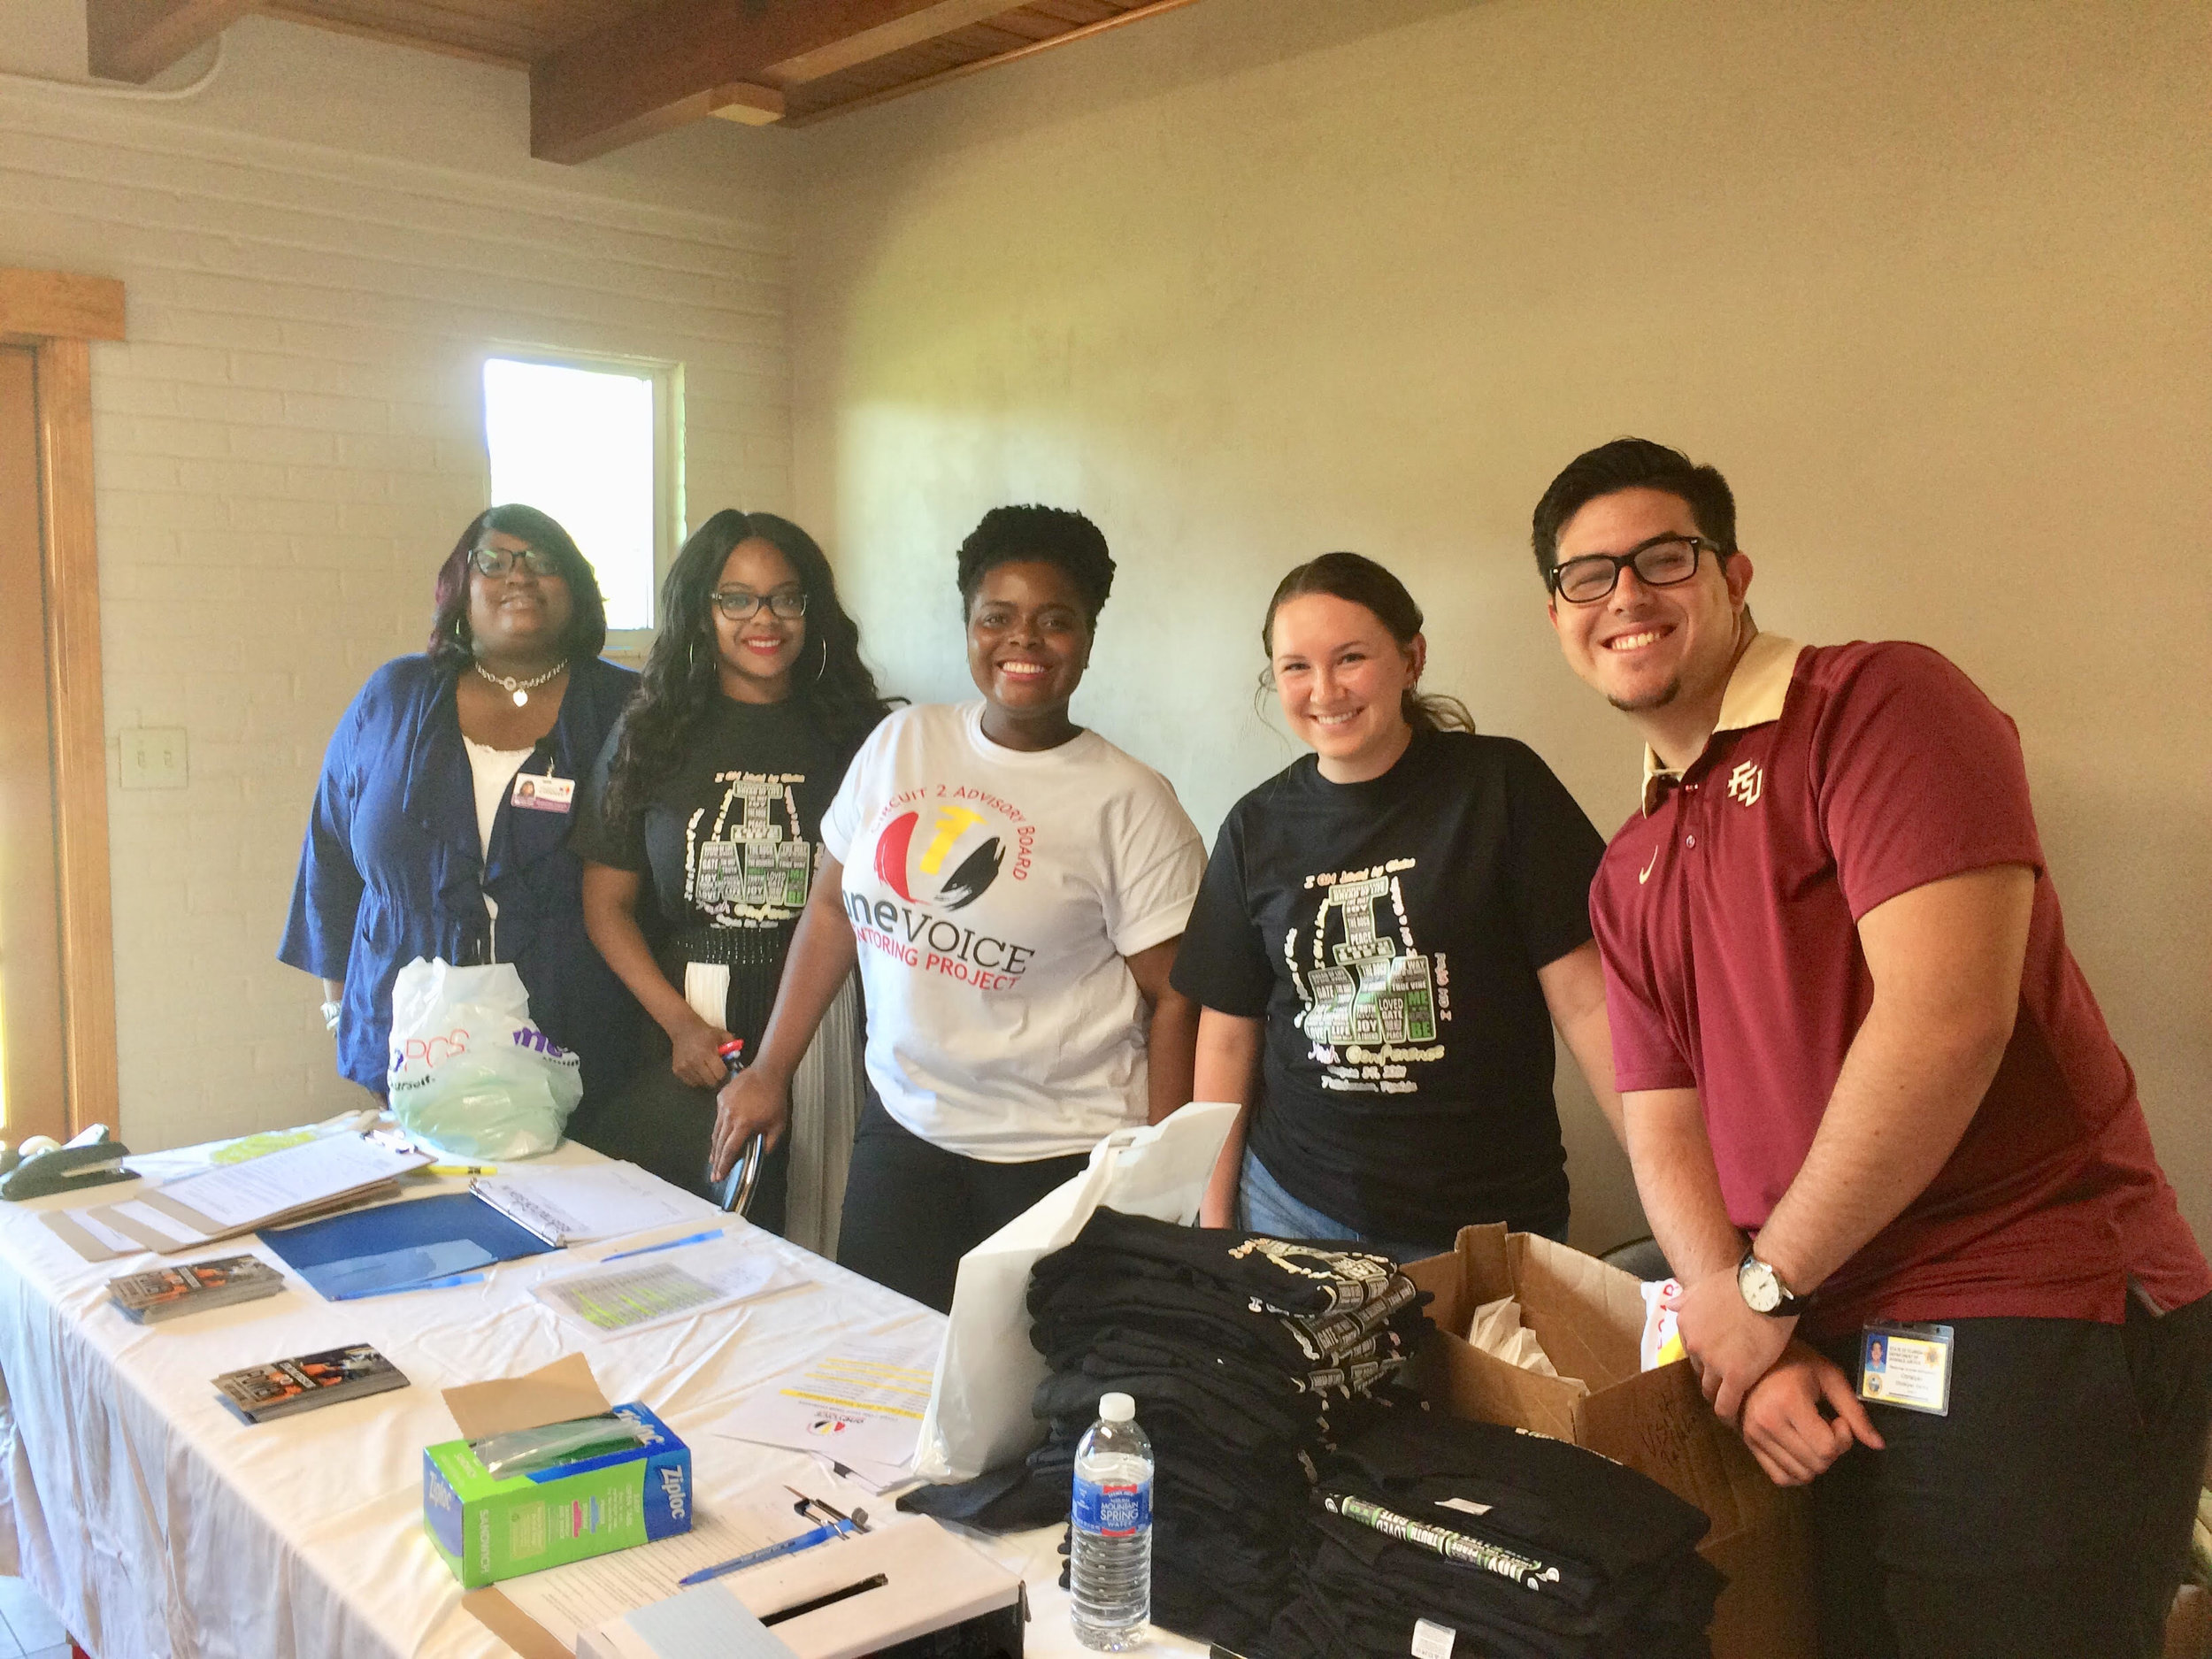 DJJ Staff and Volunteers alone with FSU Faith Volunteers